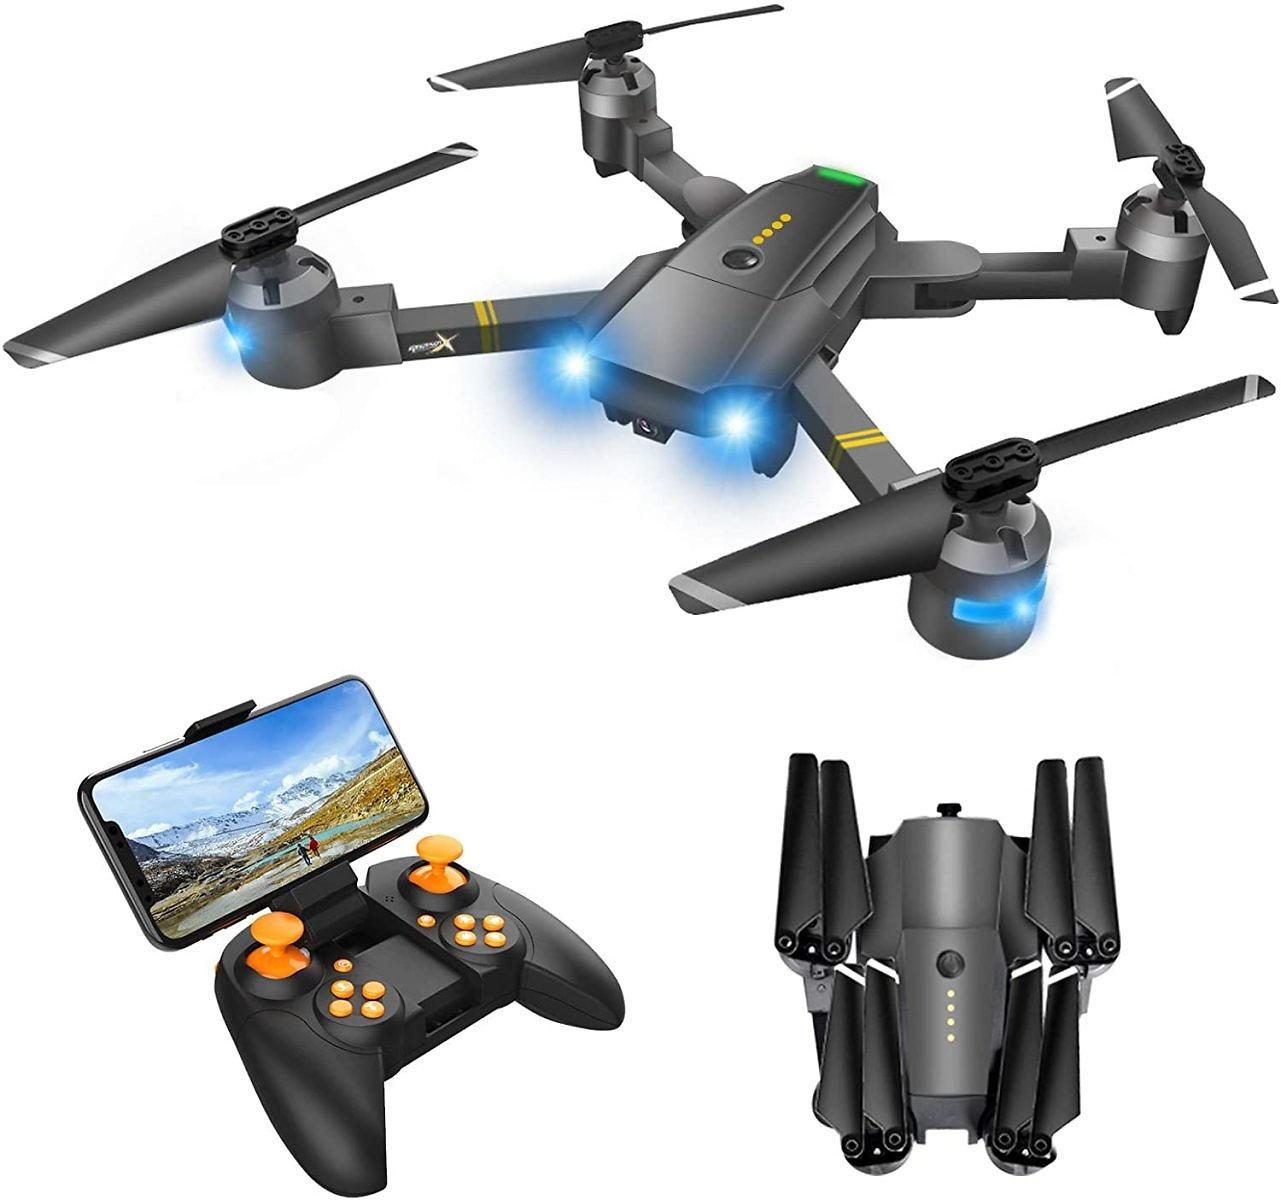 Attop RC Quadcopter Drone with Camera